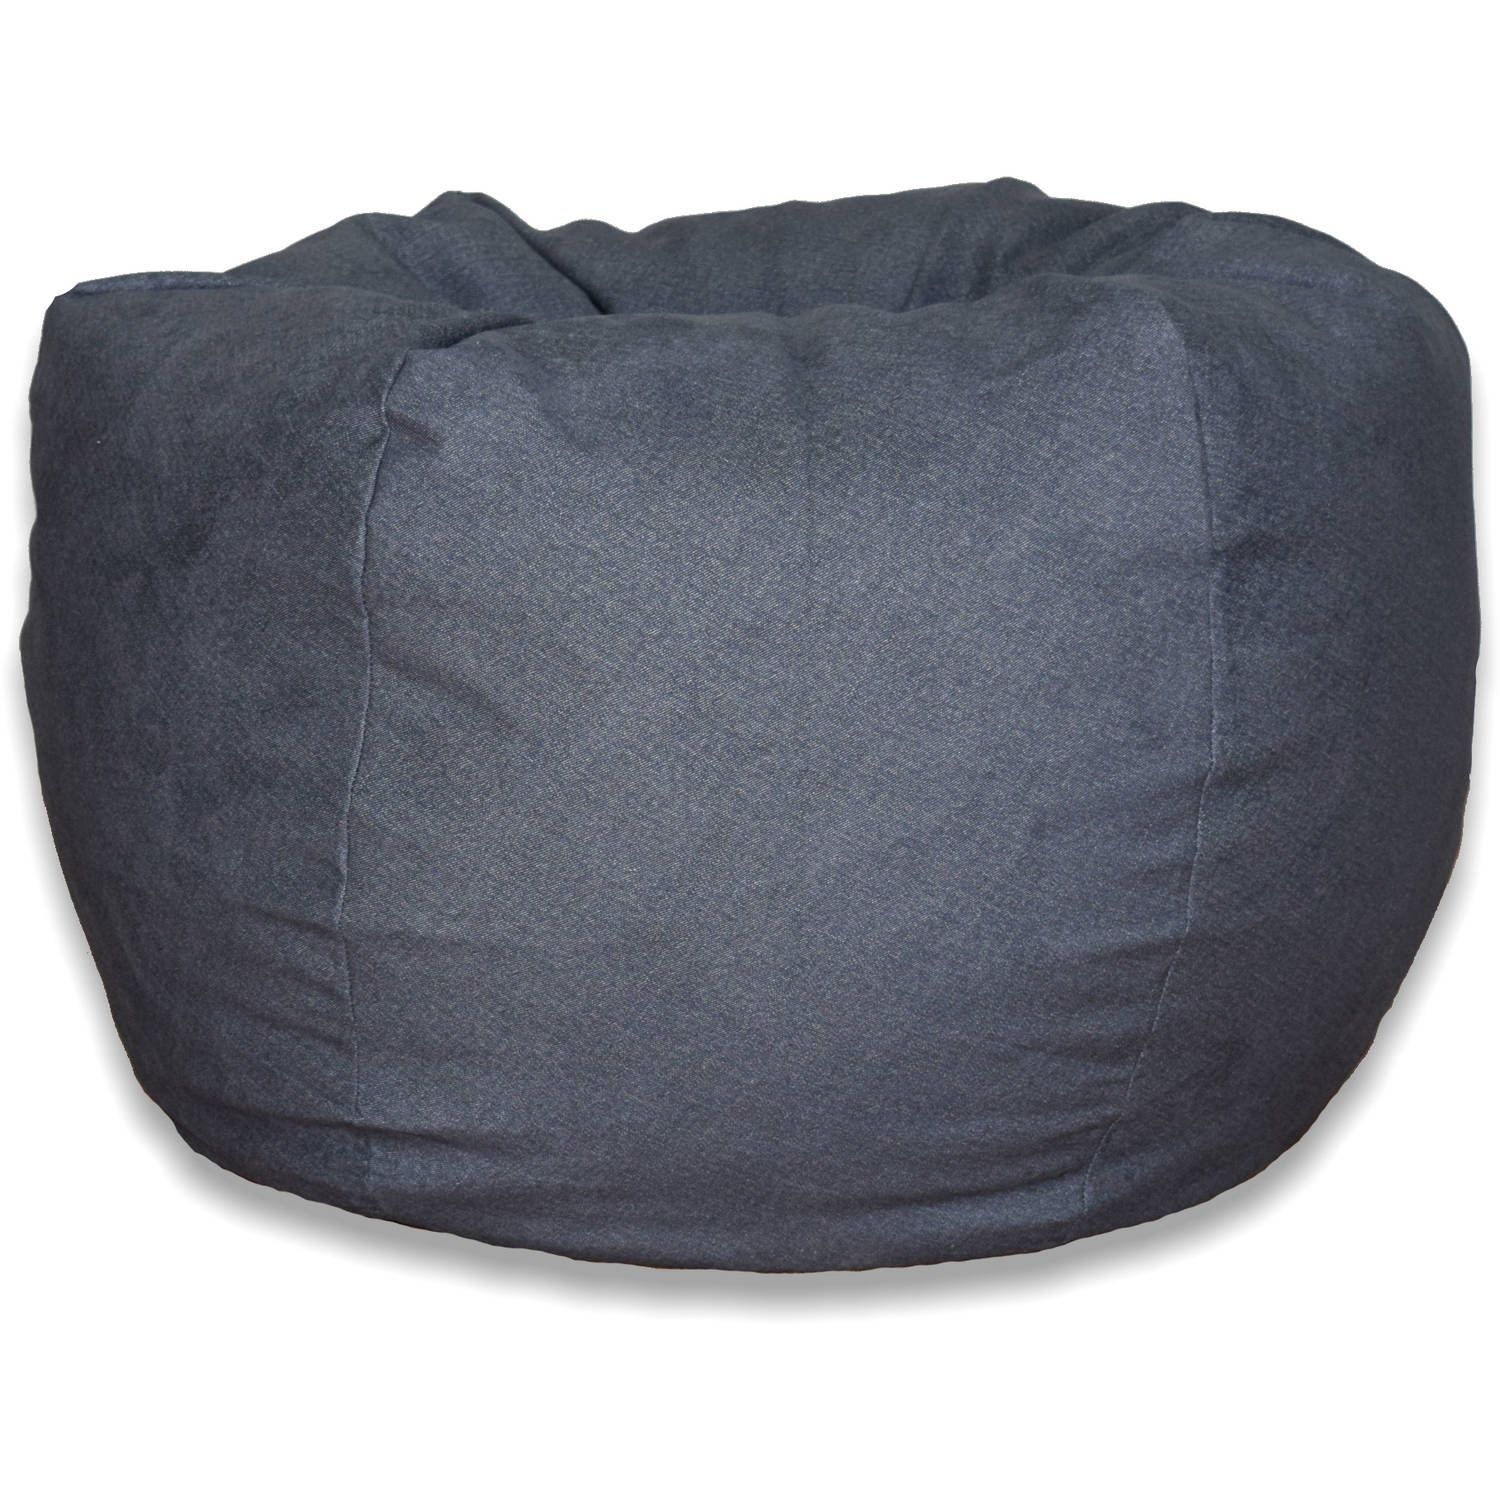 Extra Large Brushed Denim Bean Bag, Available In Multiple Colors